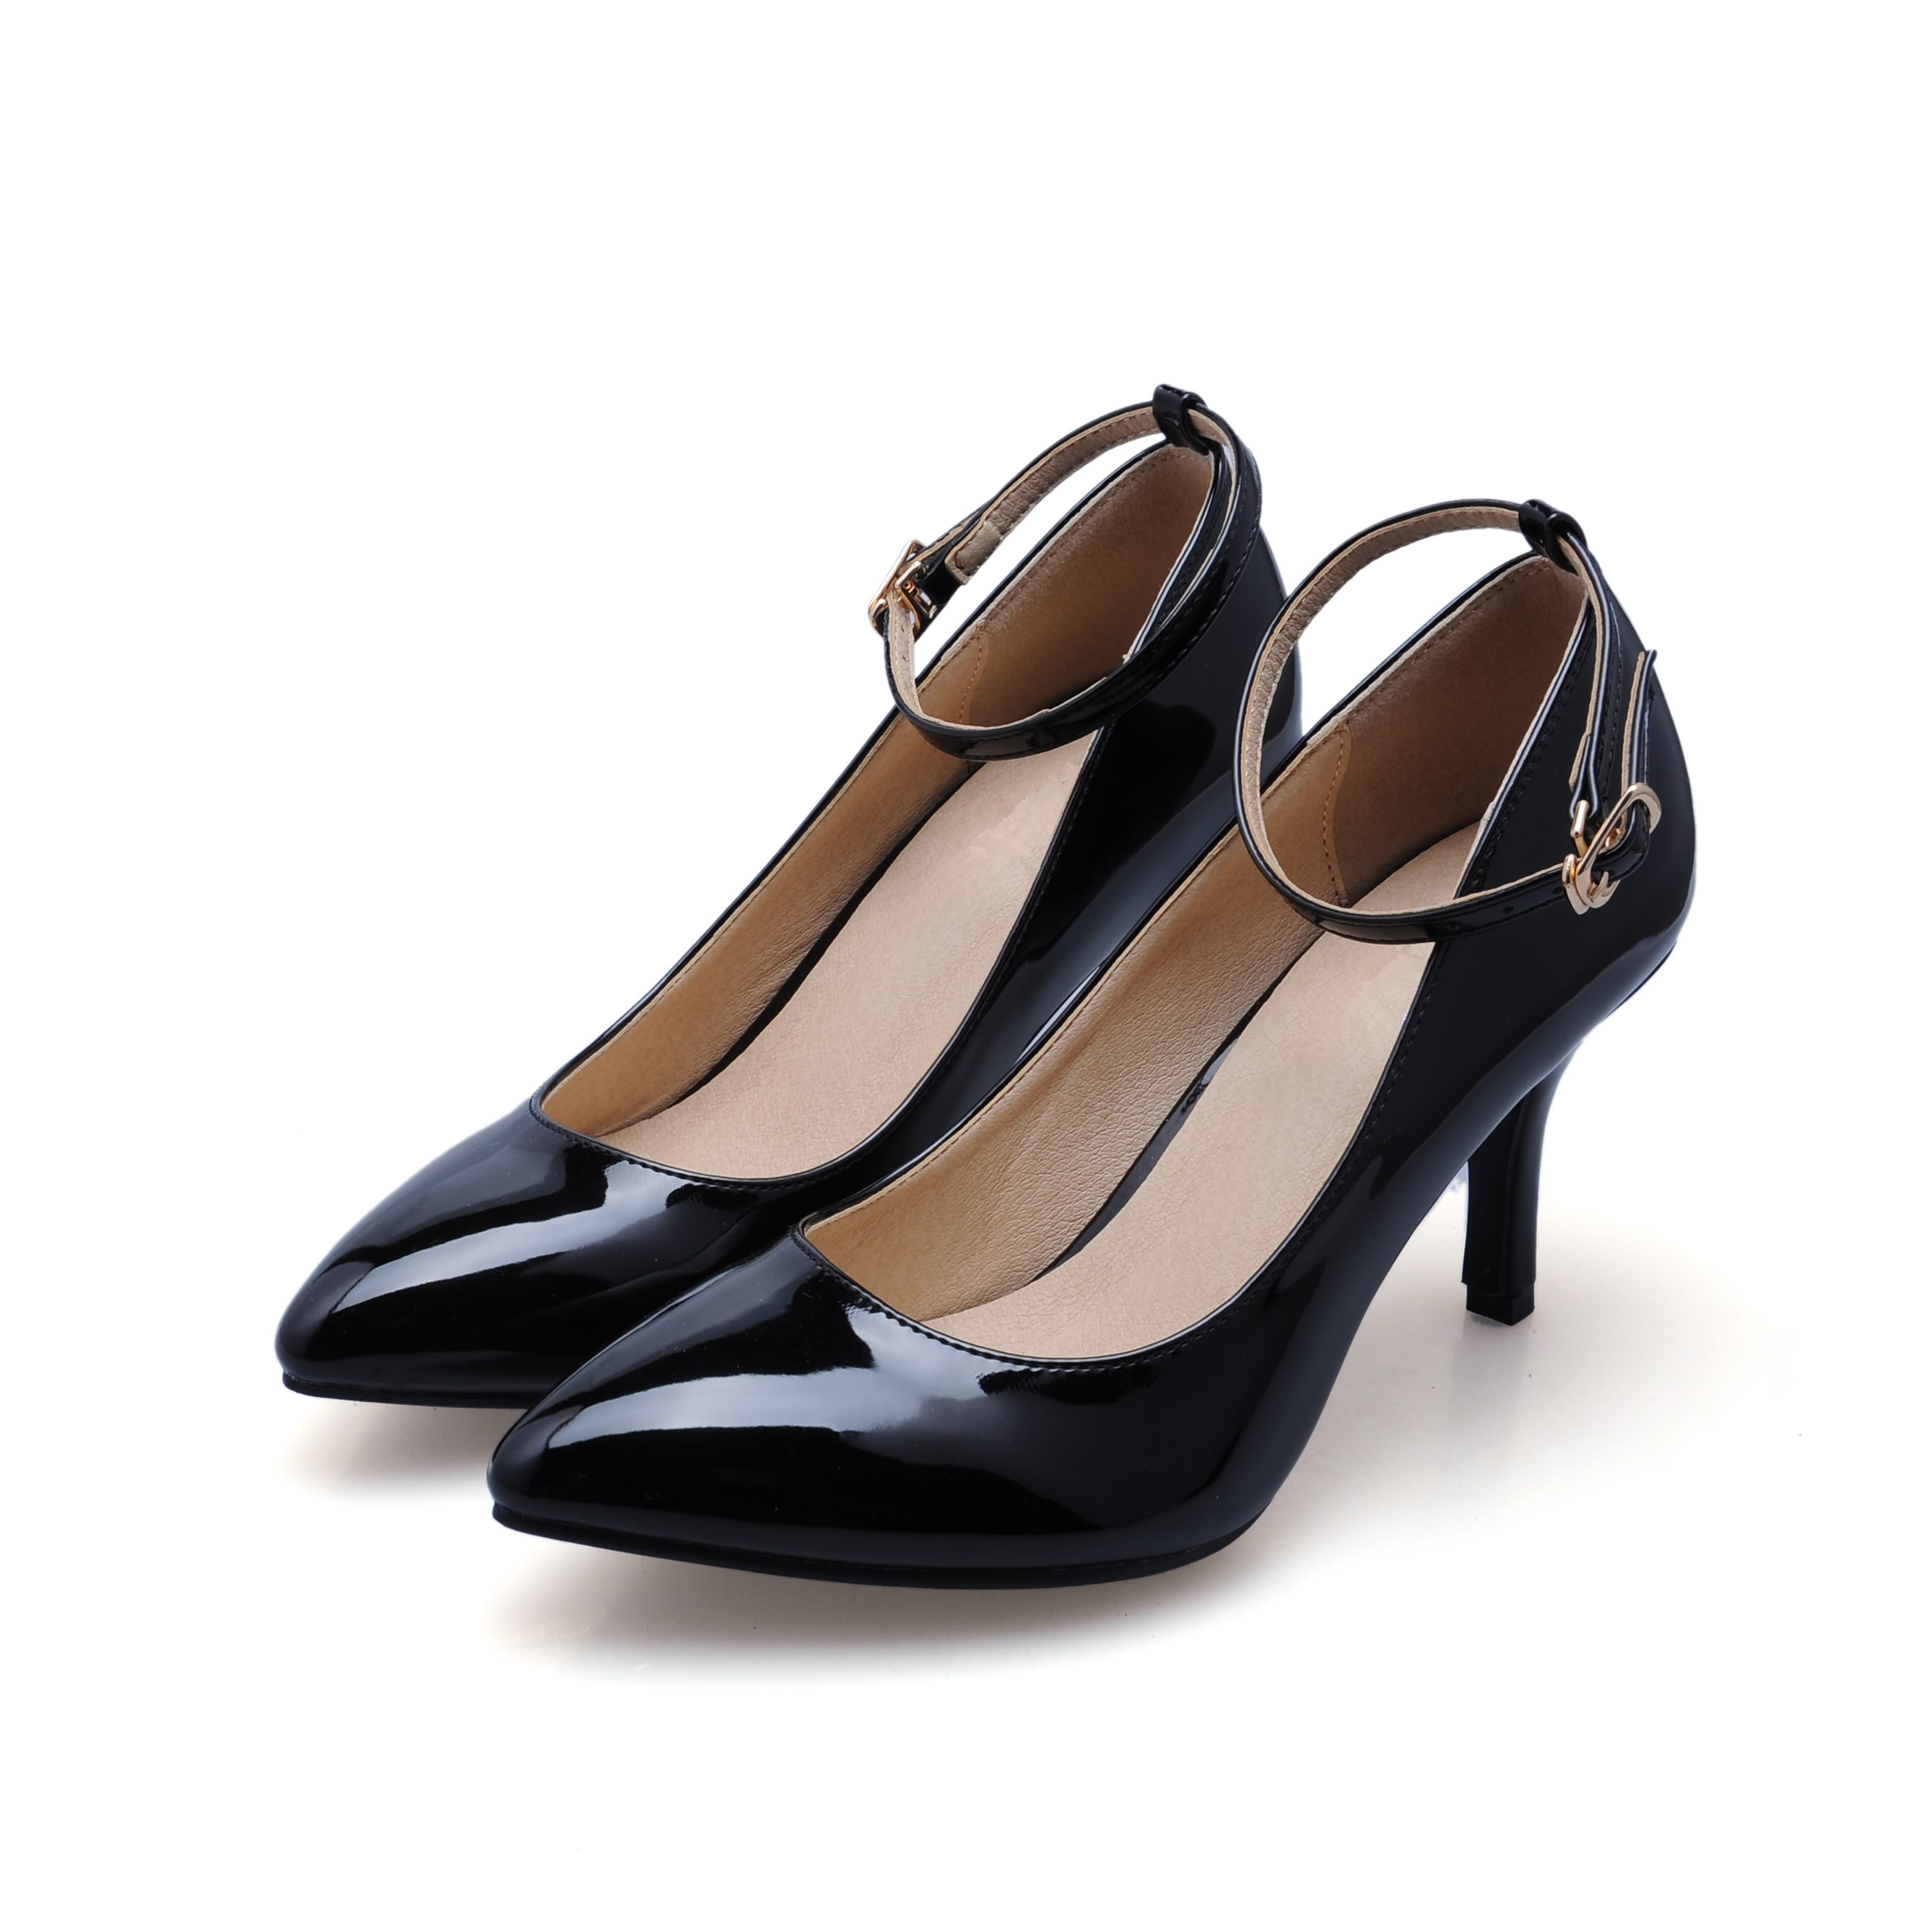 New 2017 Women Pointed Toe High Heels Sexy Patent Genuine Leather Ladies Pumps Fashion Sheepskin Party Dress Shoes SMYCN-53 facndinll new black patent genuine leather pointed toe rhinestone sexy high heels lace up women pumps ladies party casual shoes